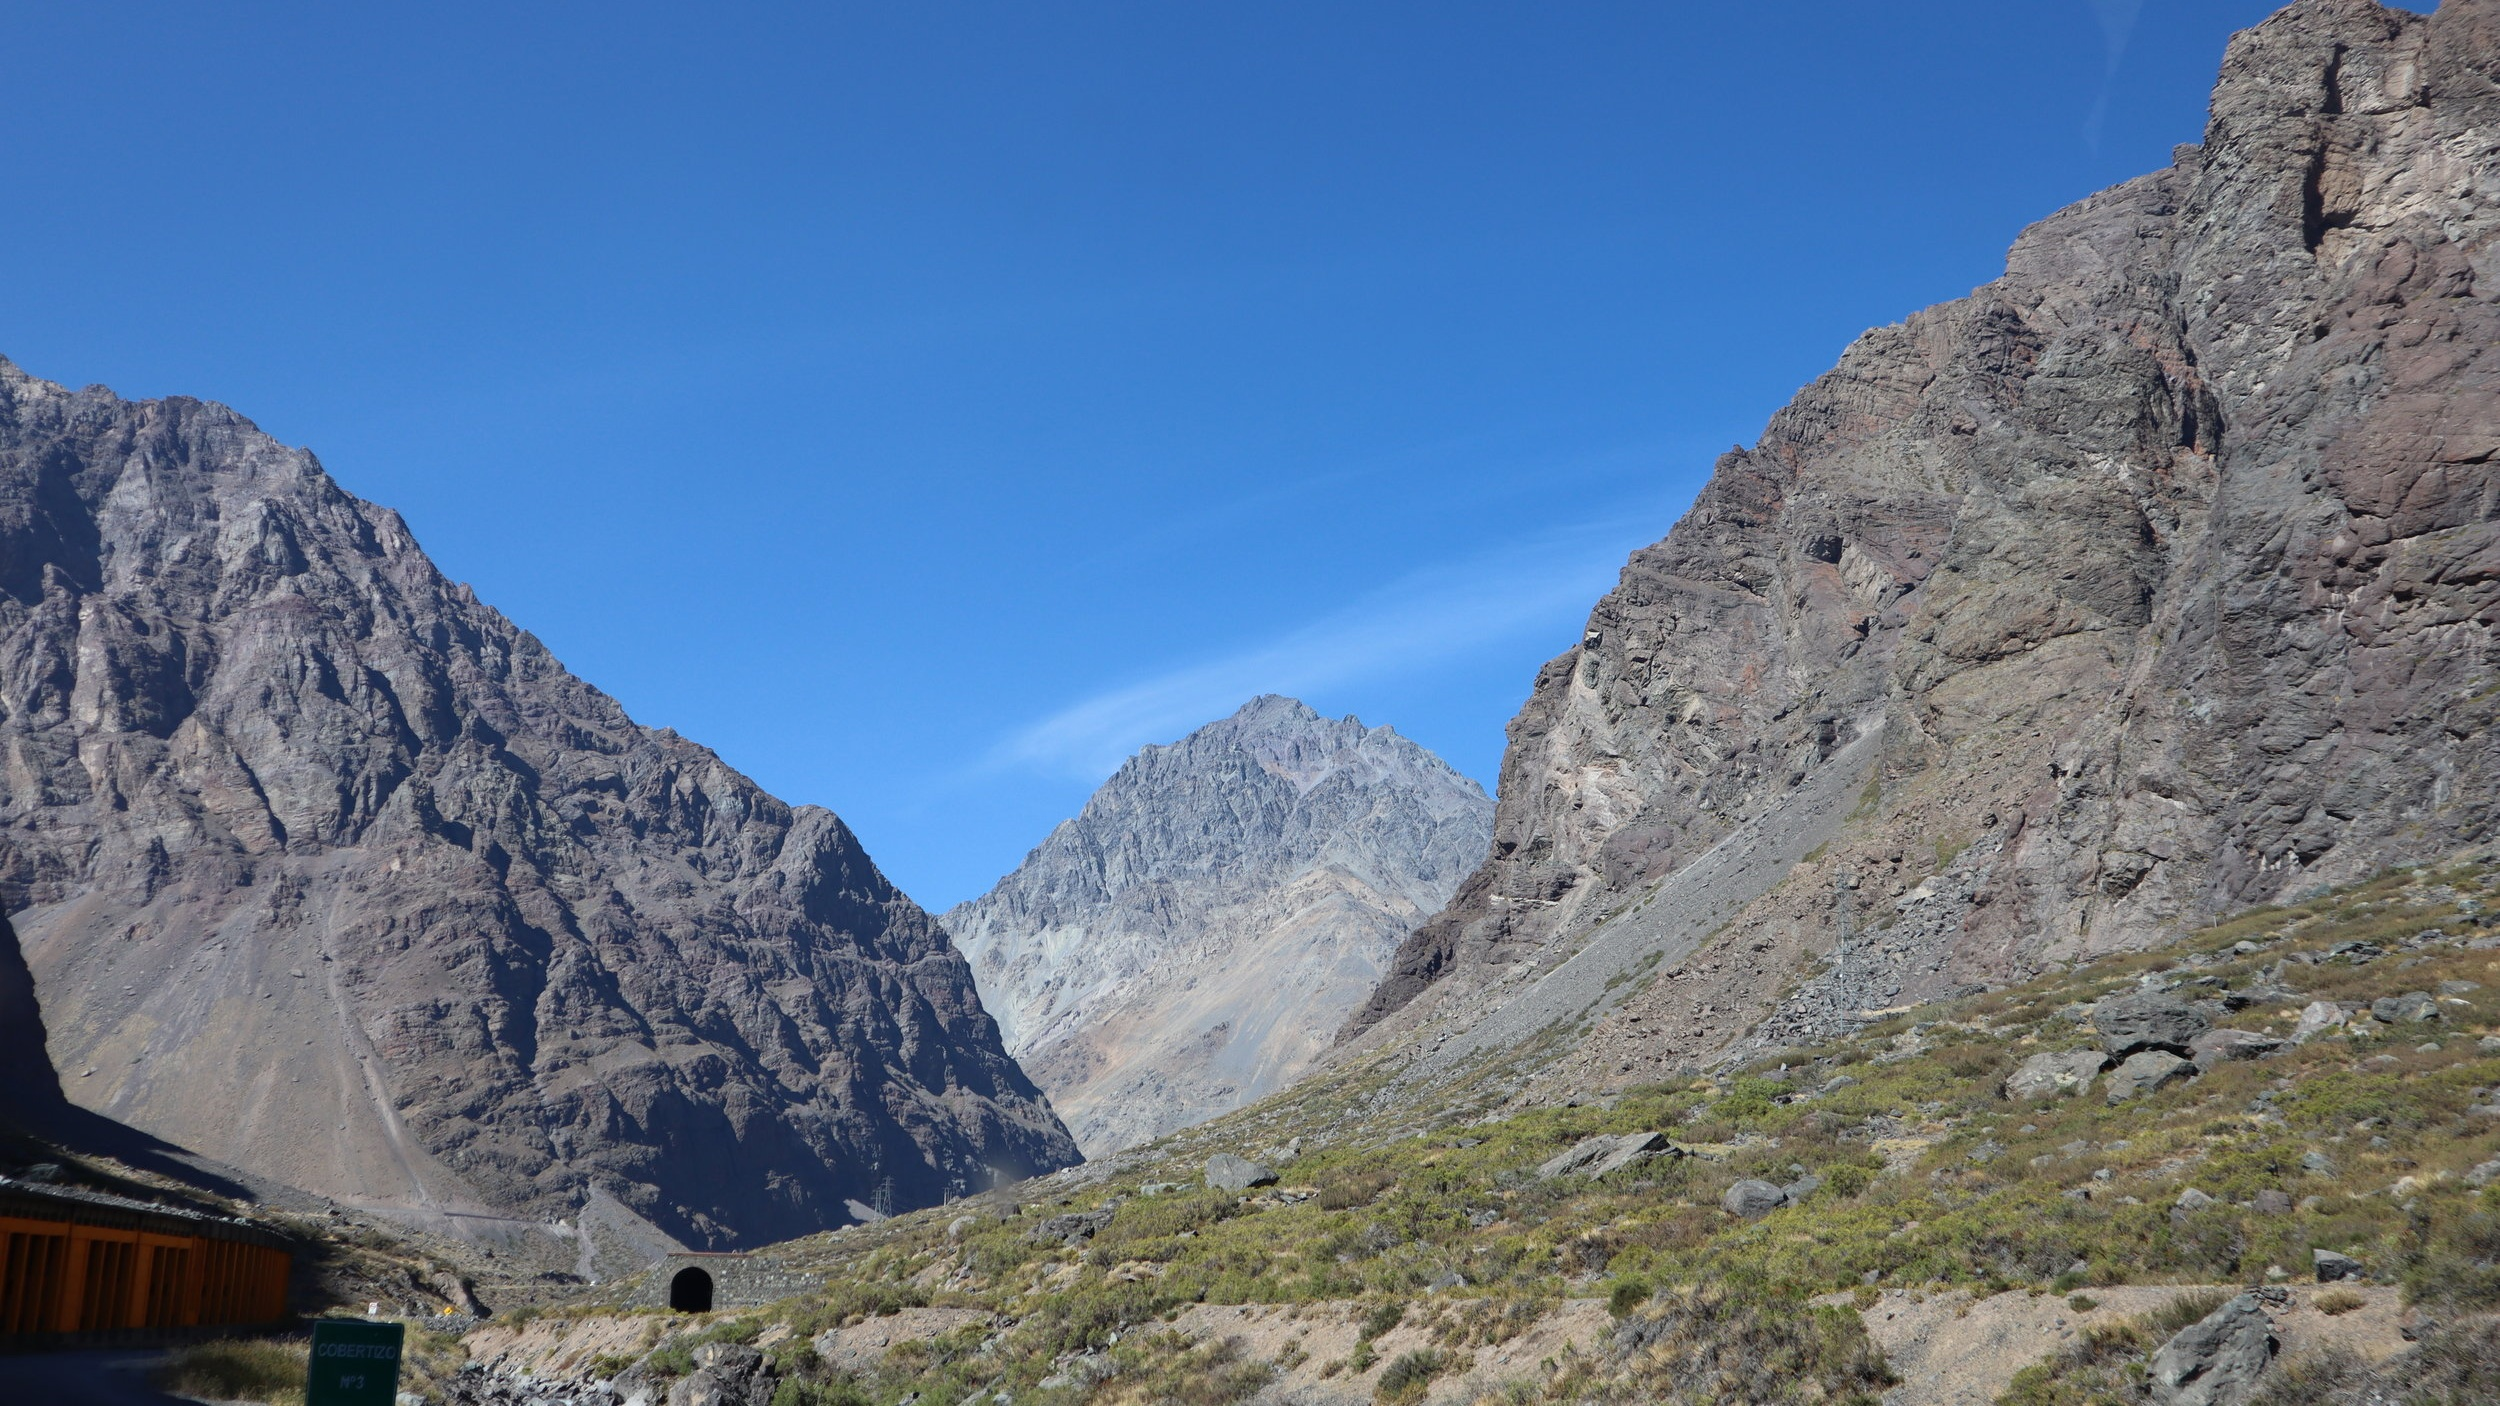 Somewhere in the Andes Mountains between Santiago and Mendoza.